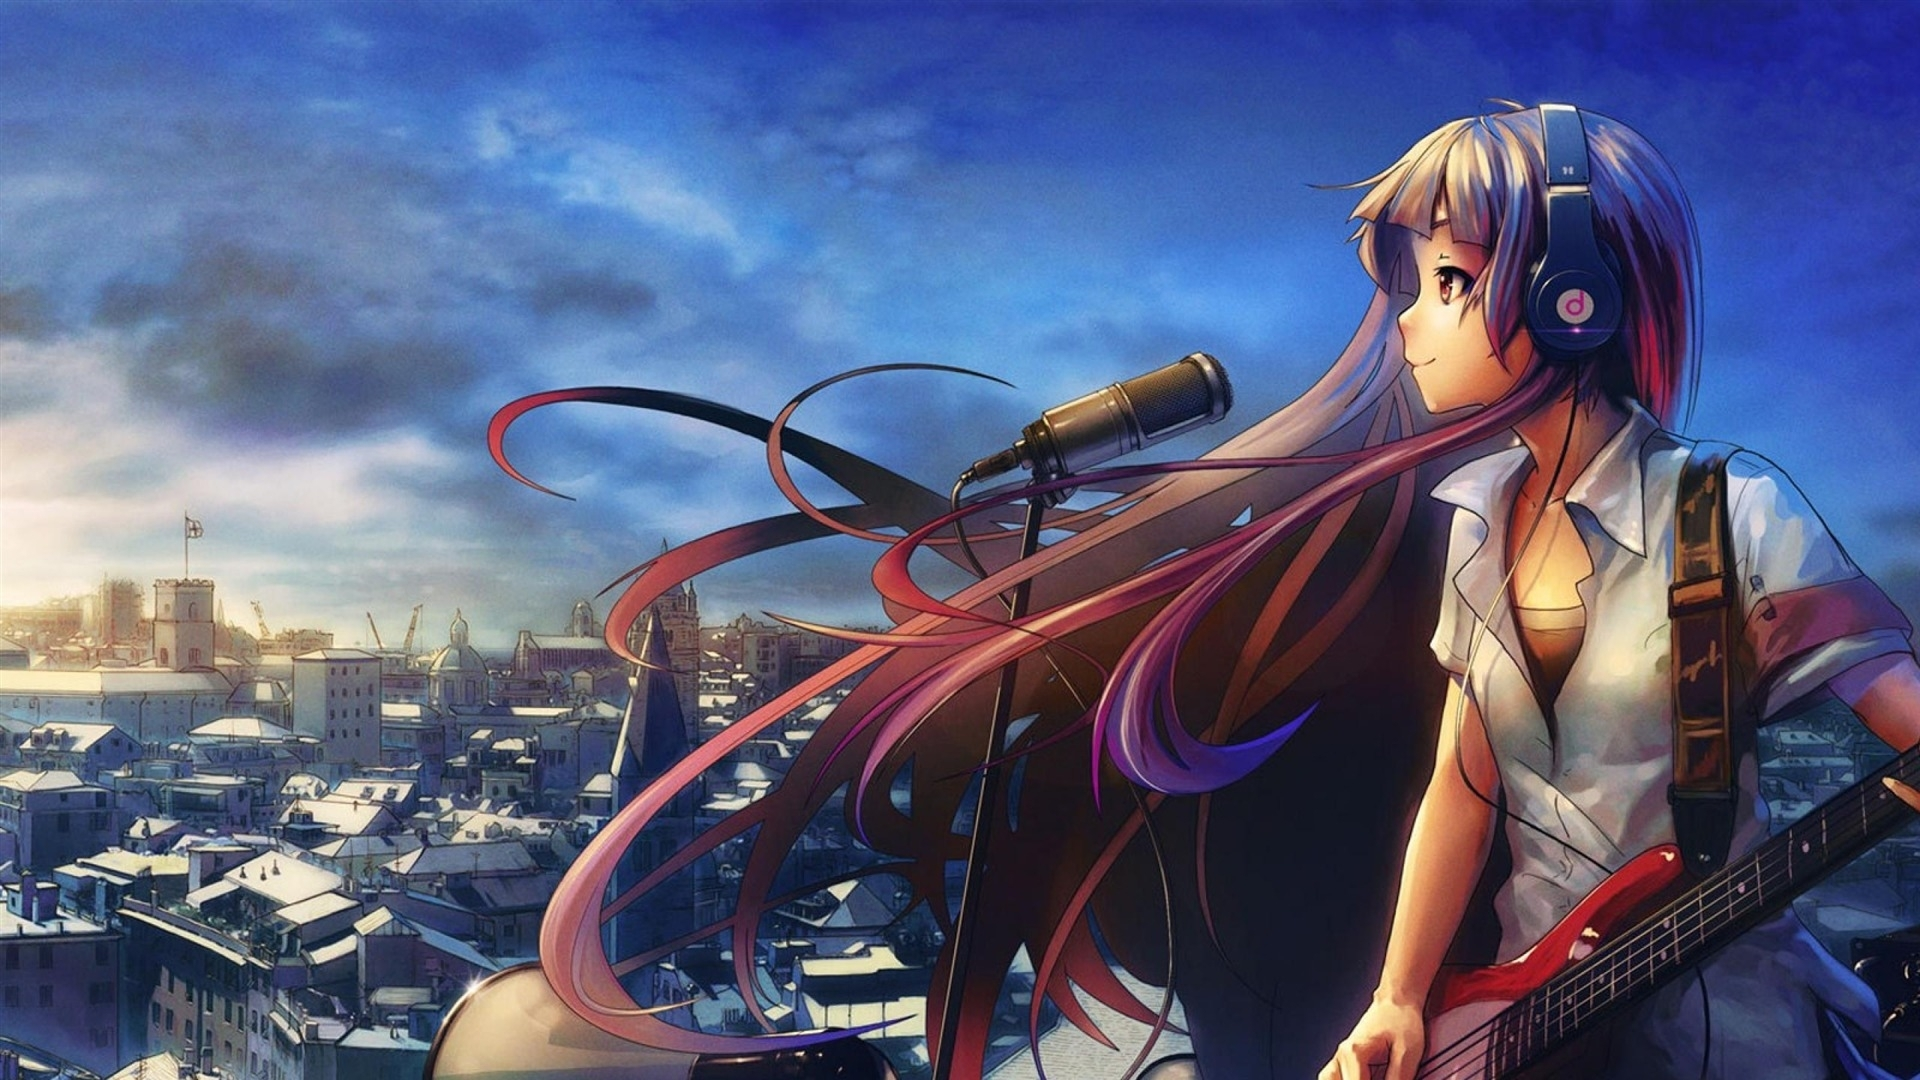 beautiful anime music wallpaper 42551 1920x1080 px ~ hdwallsource